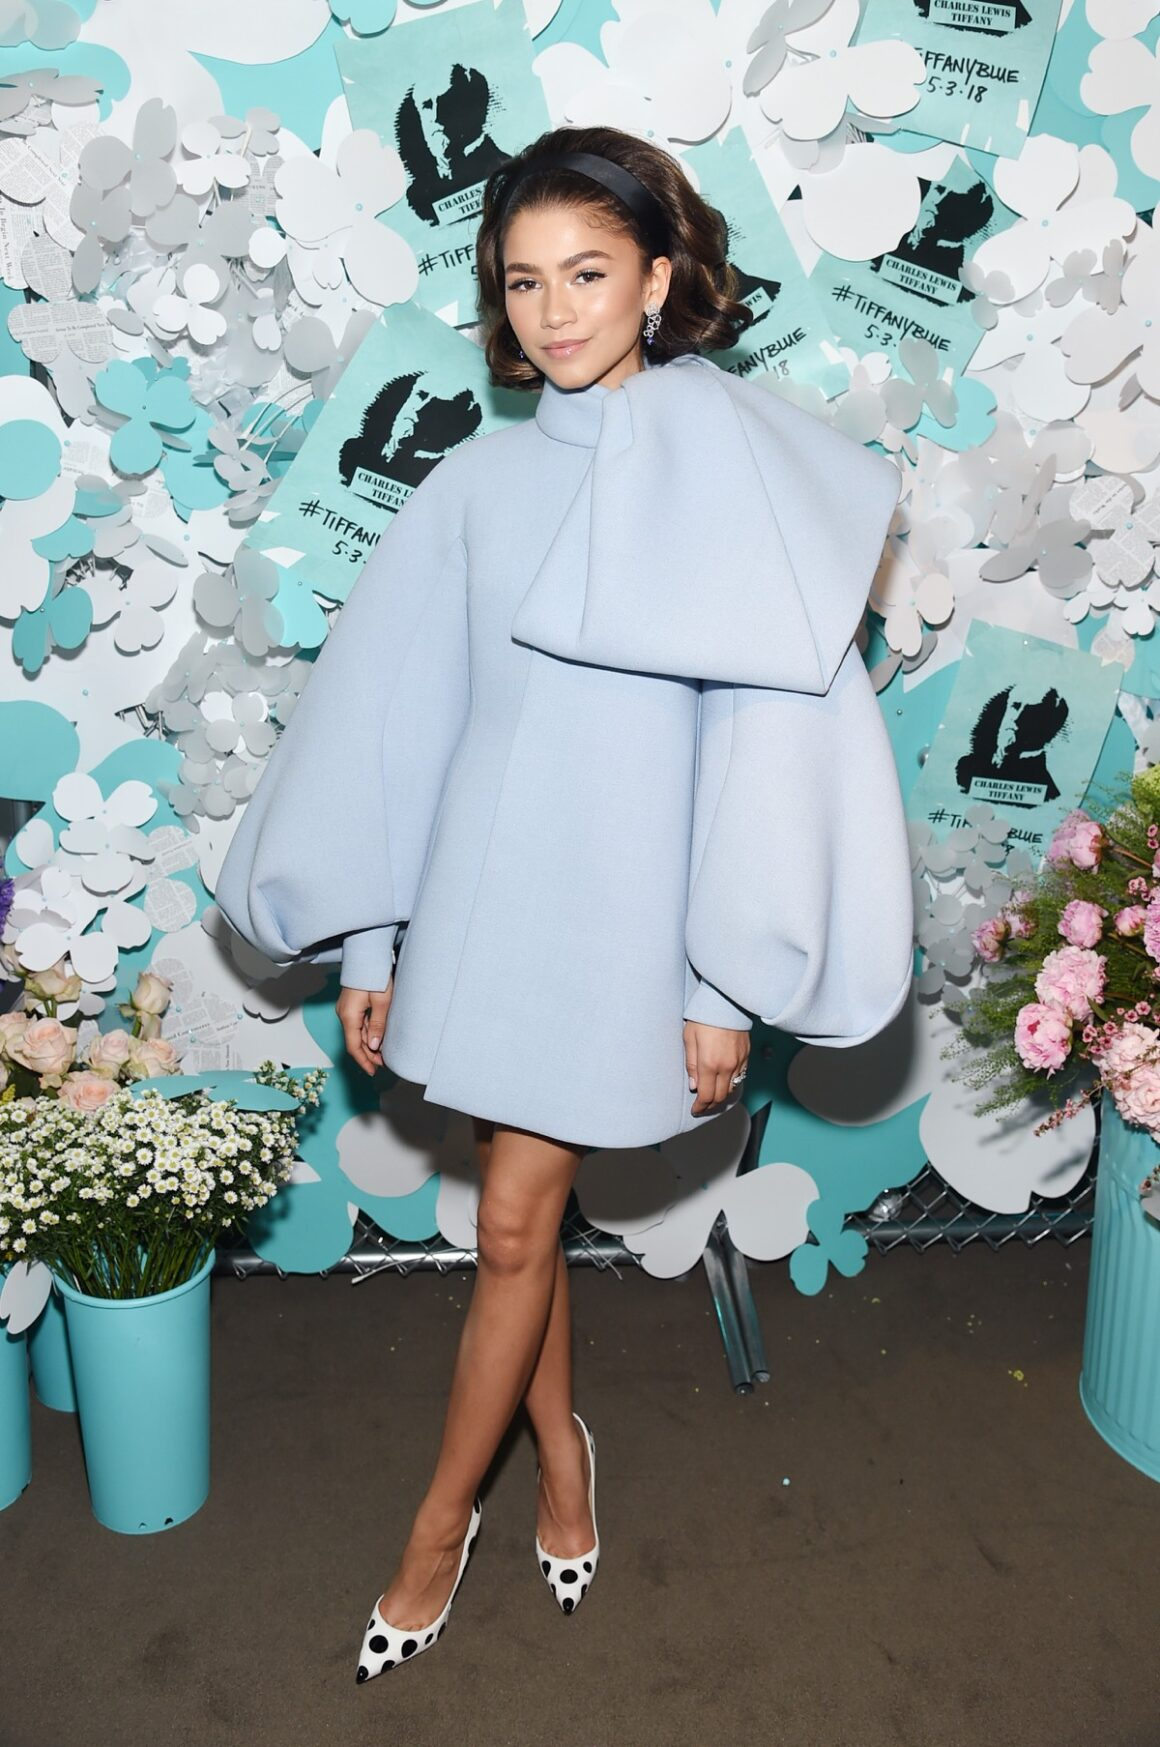 Zendaya Tiffany & Co. Paper Flowers Event And Believe In Dreams Campaign Launch